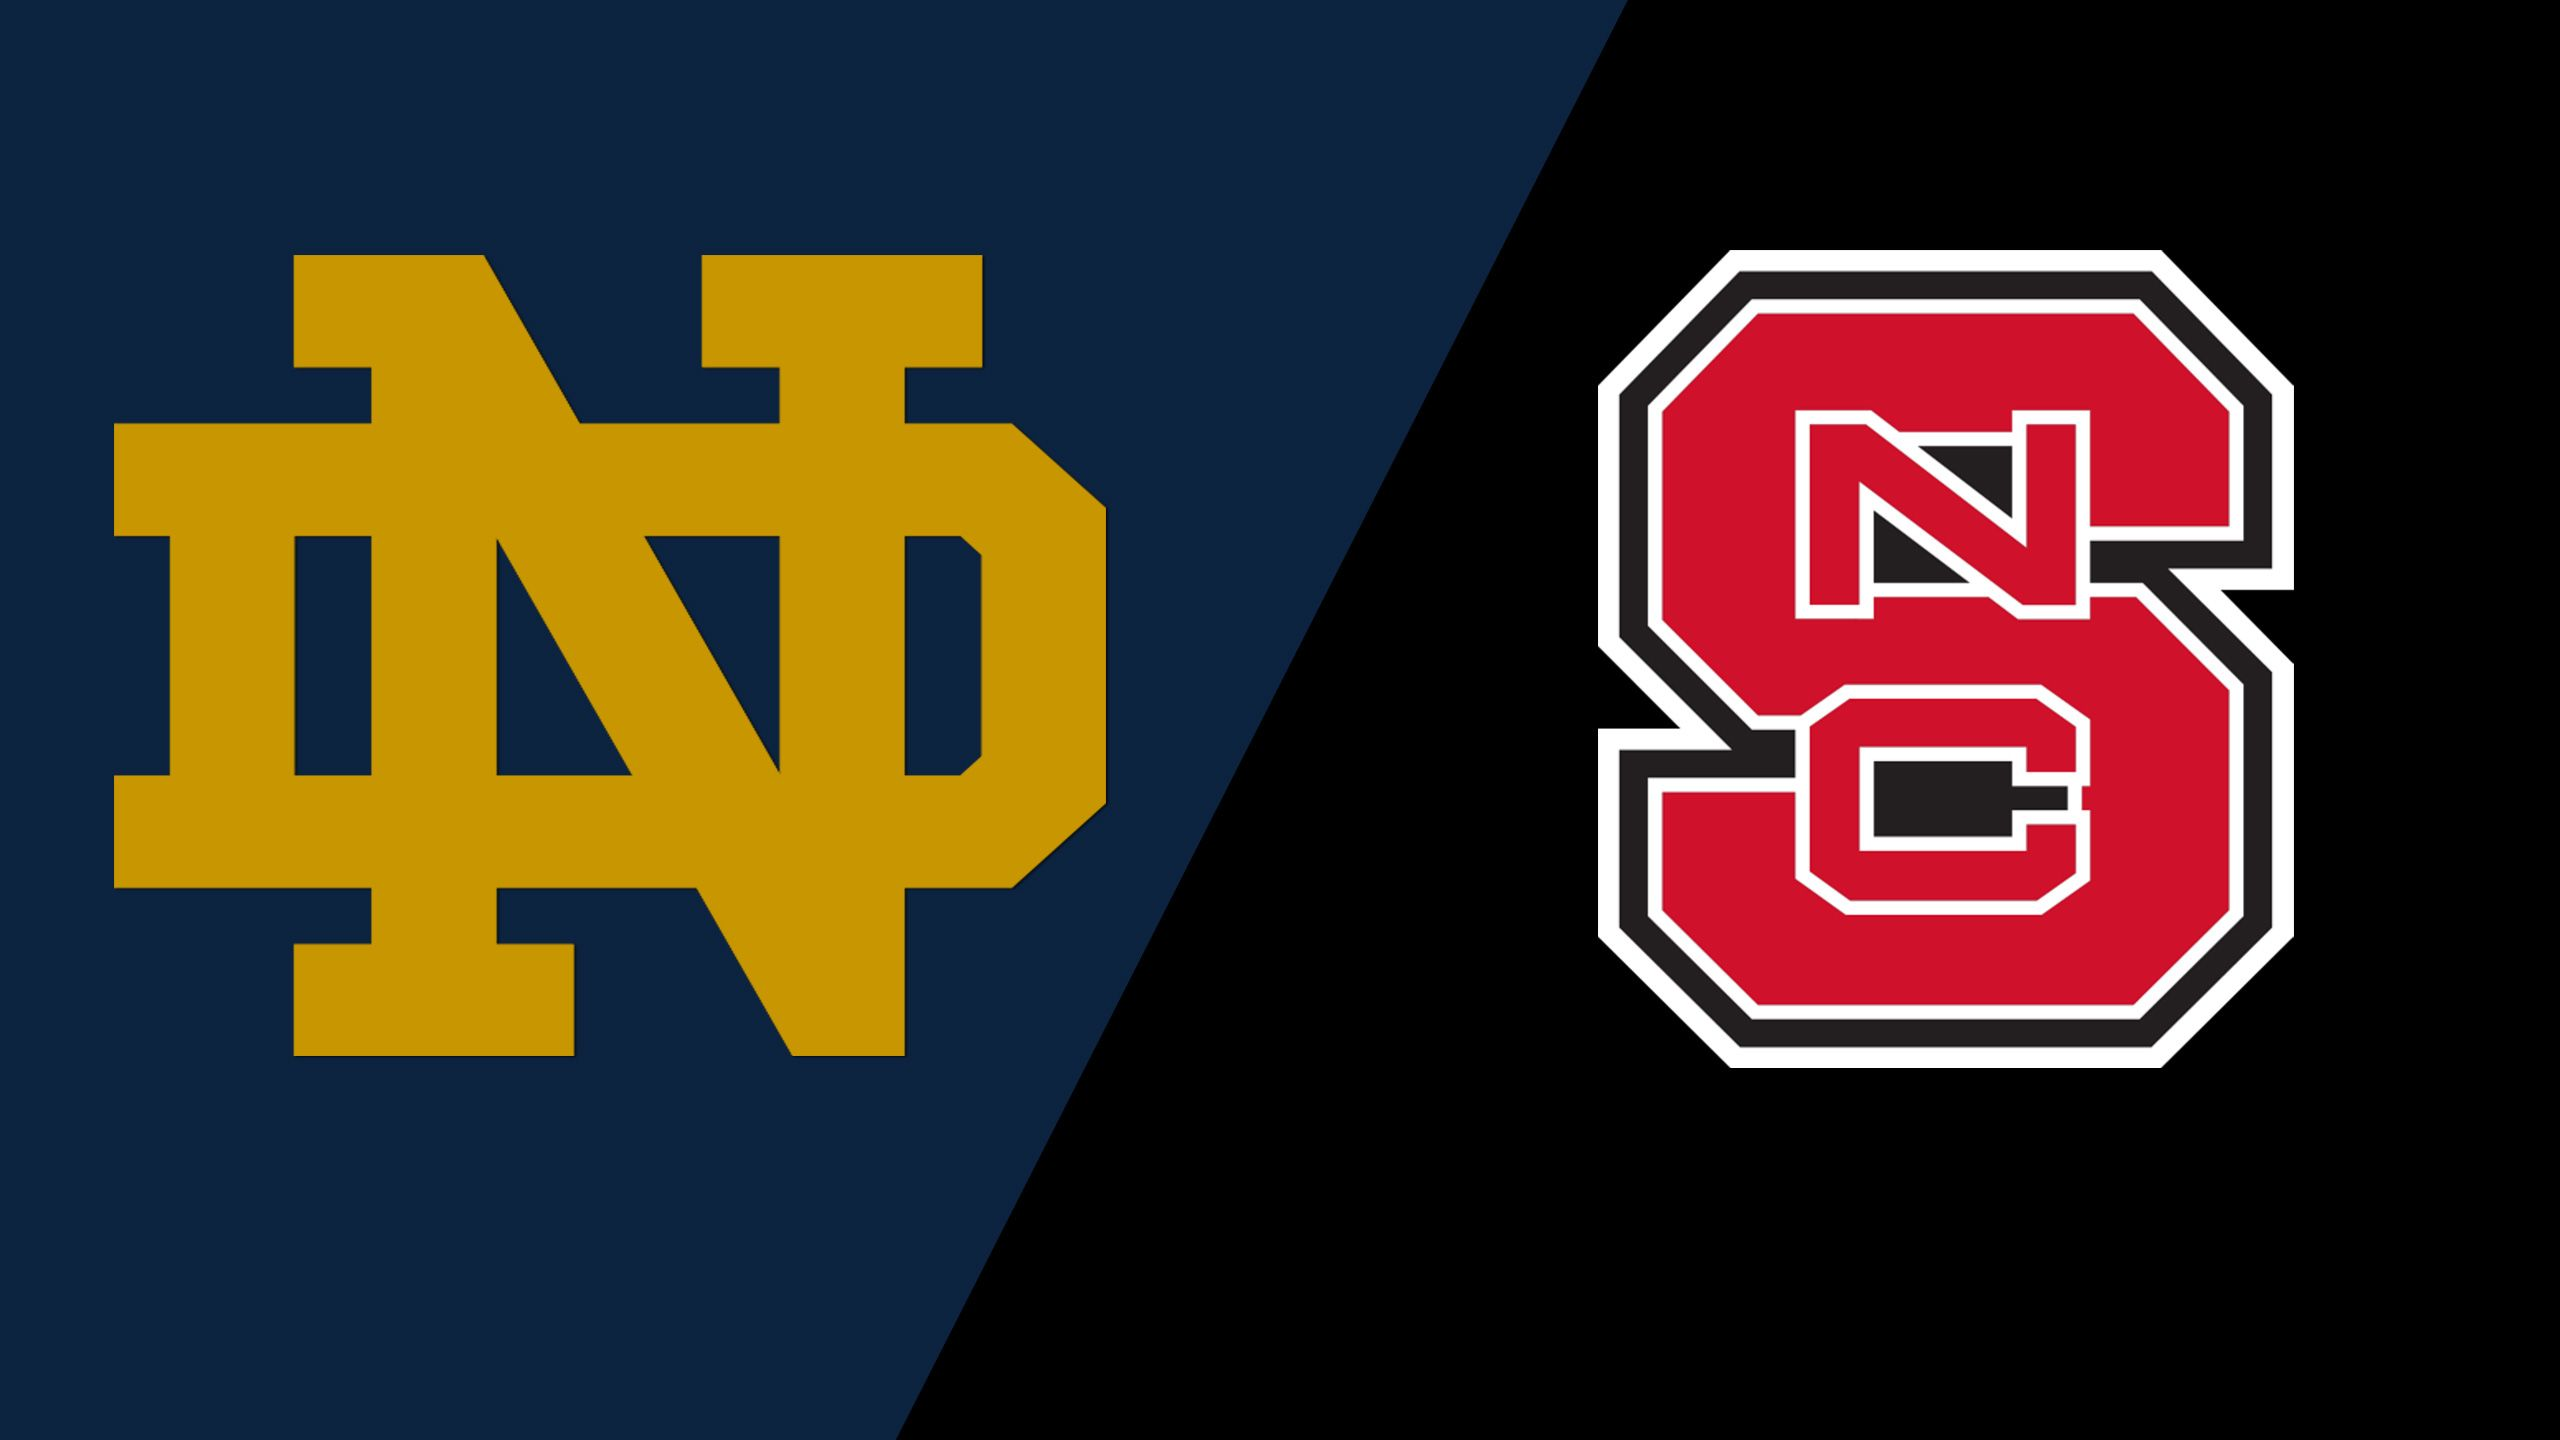 Notre Dame vs. #6 NC State (Baseball)